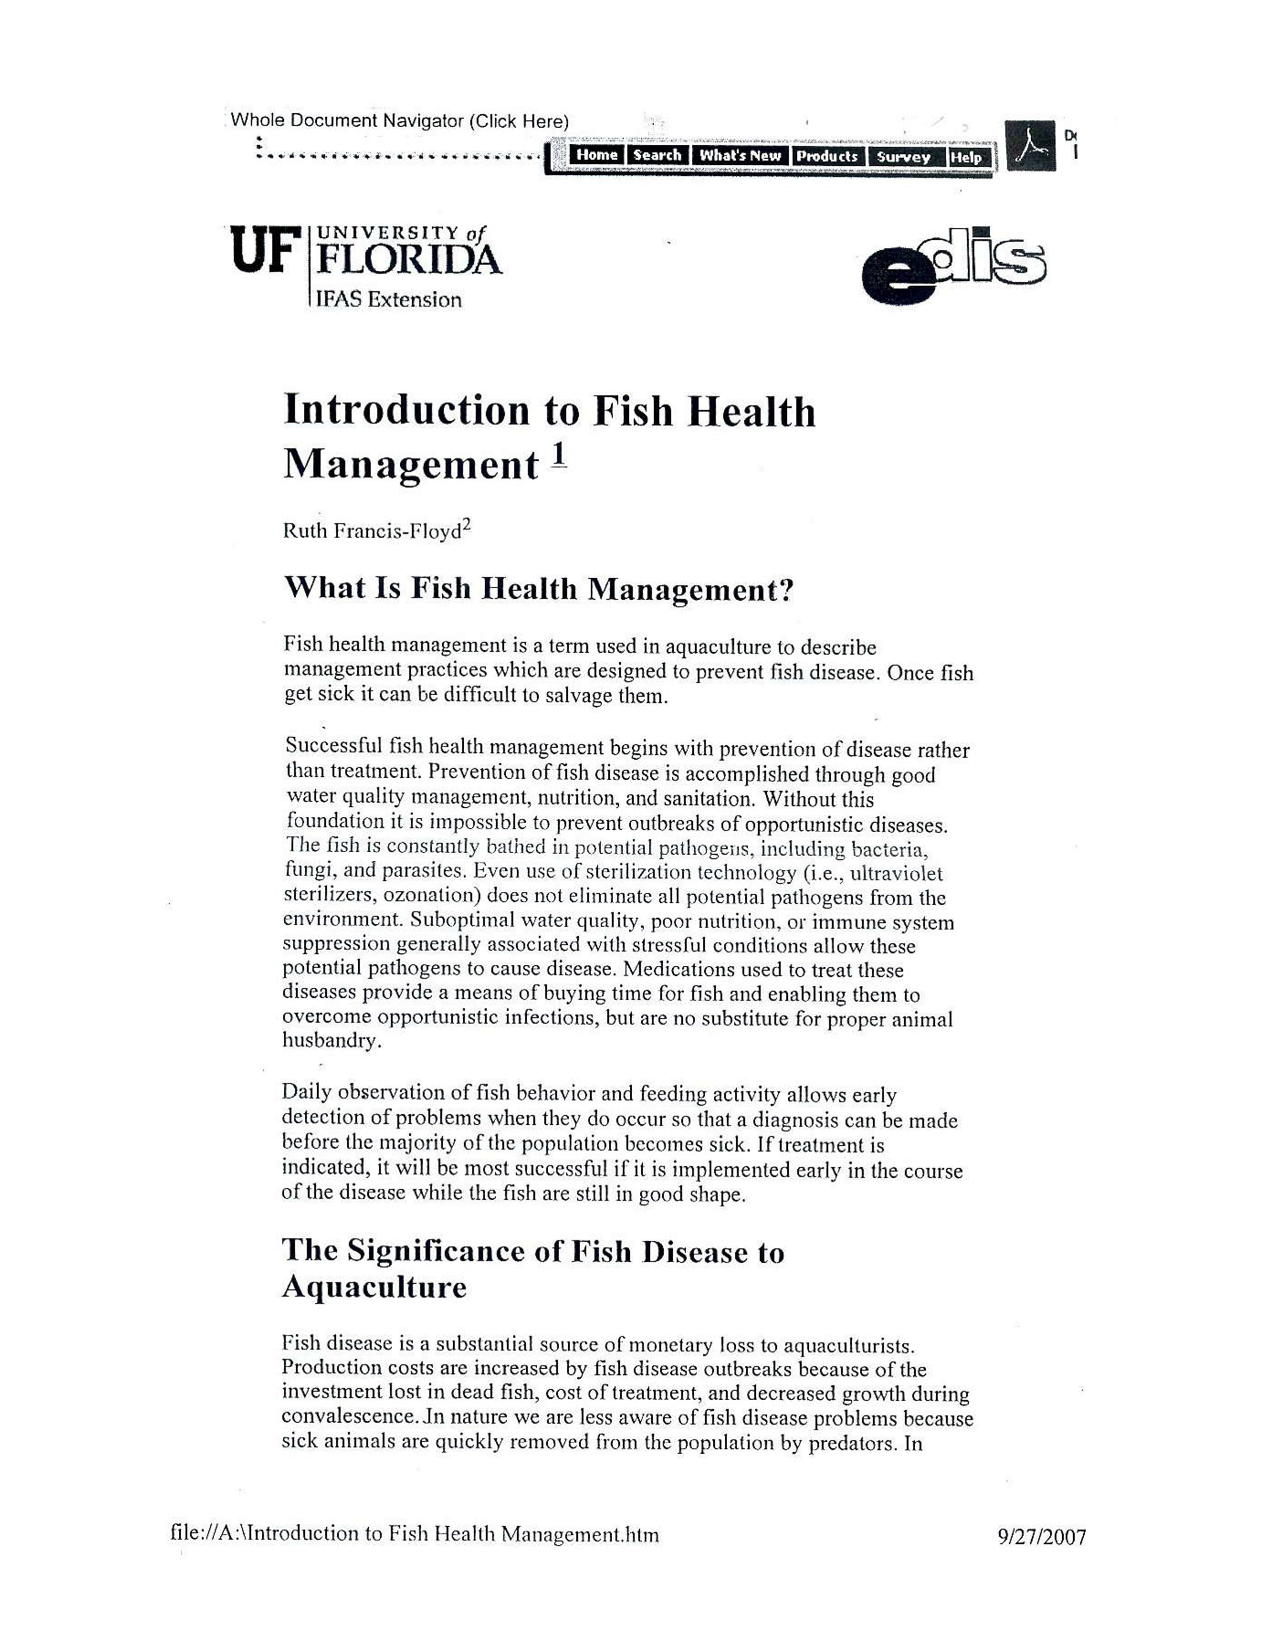 Interoduction to Fish Health Management5